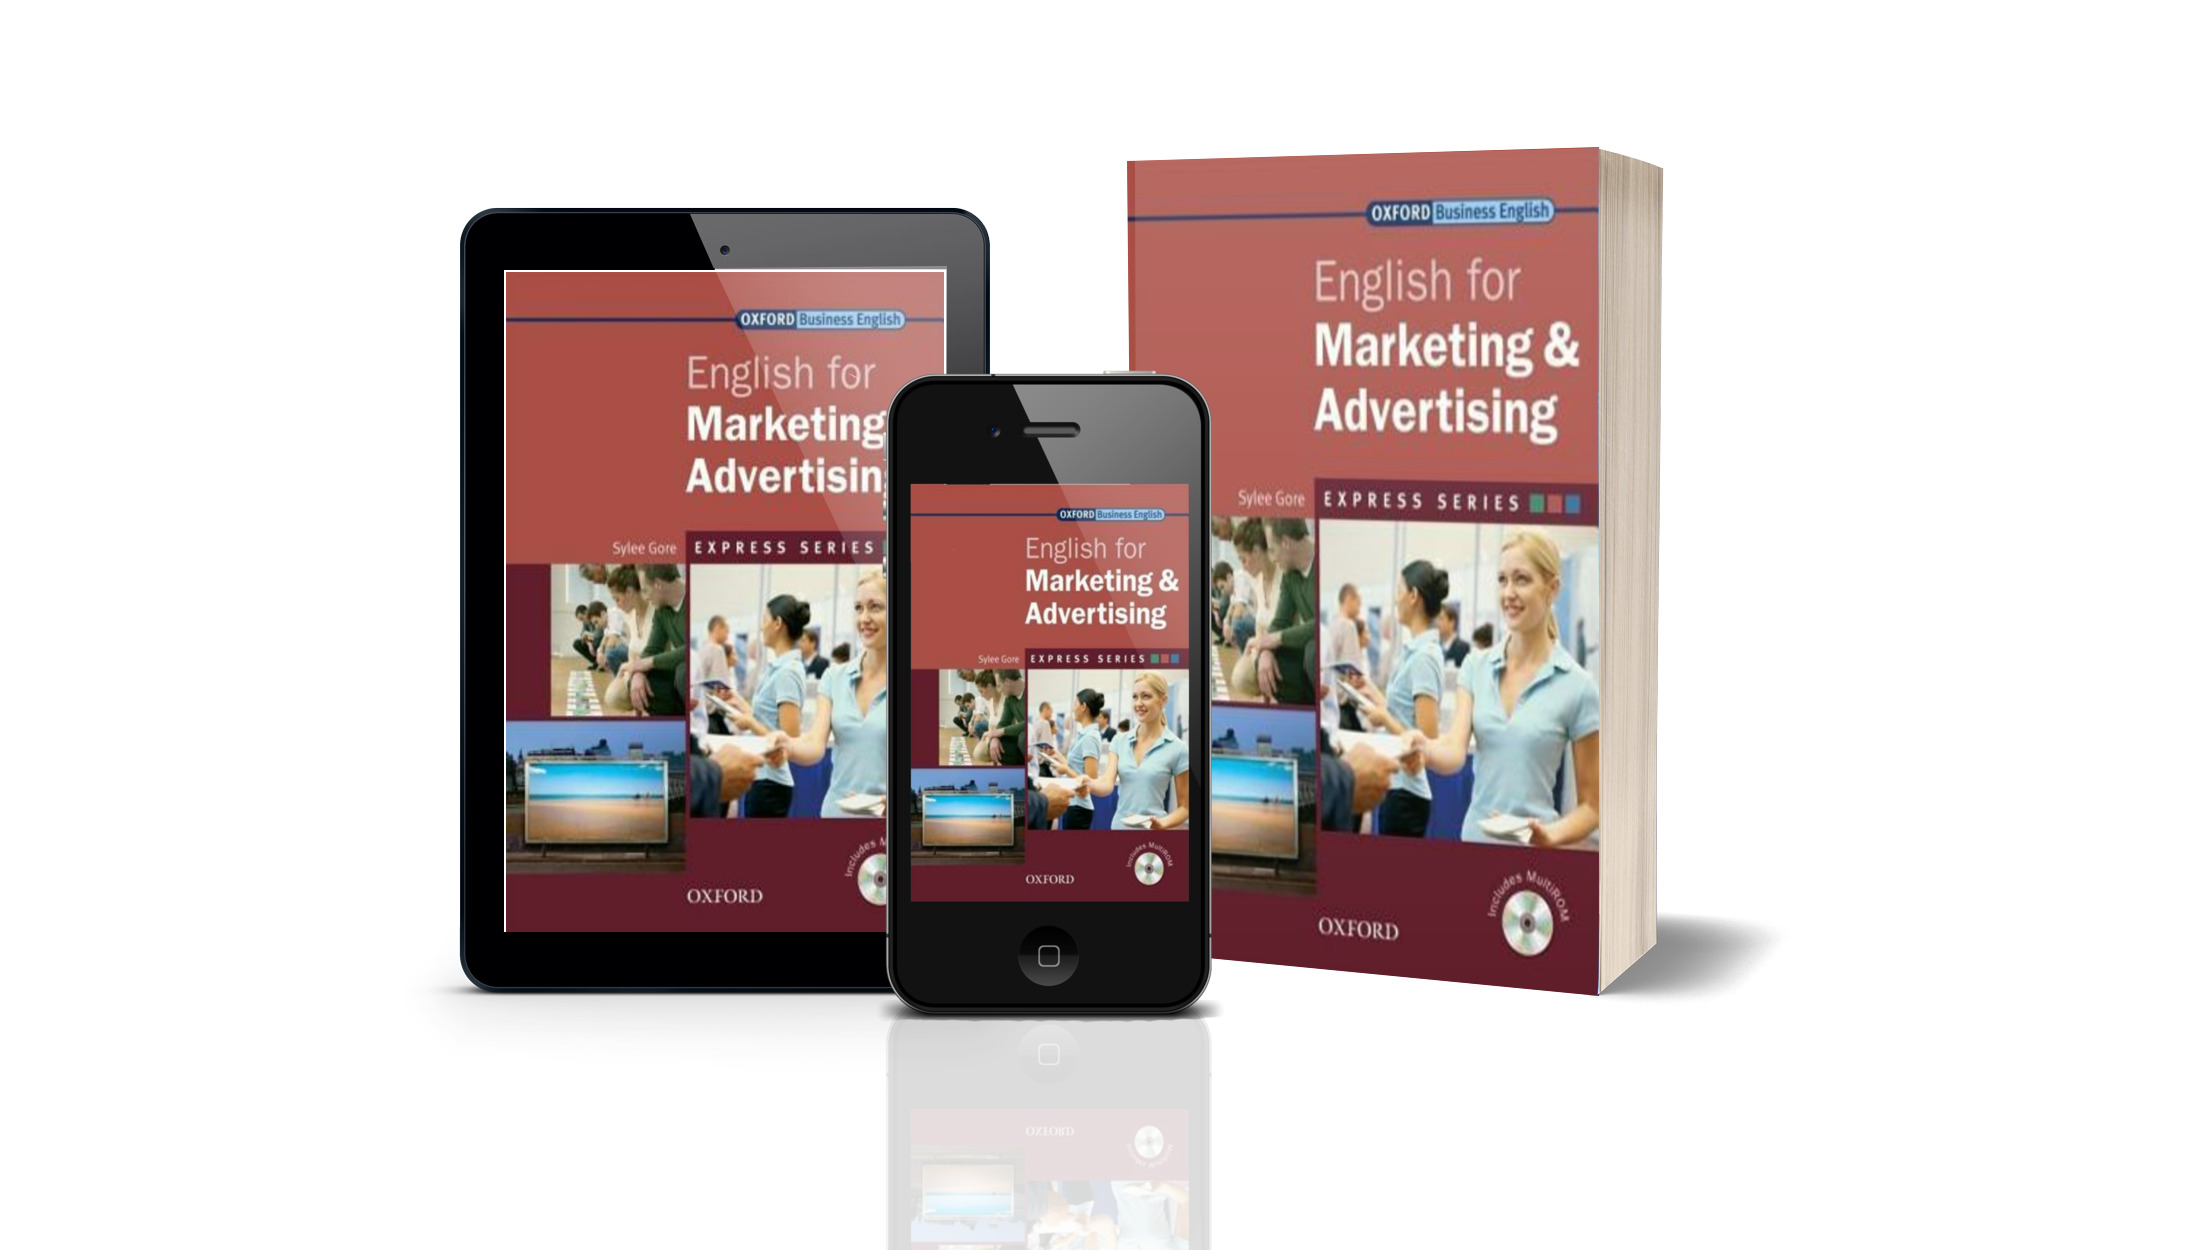 BOOK: ENGLISH FOR MARKETING AND ADVERTISING - OXFORD